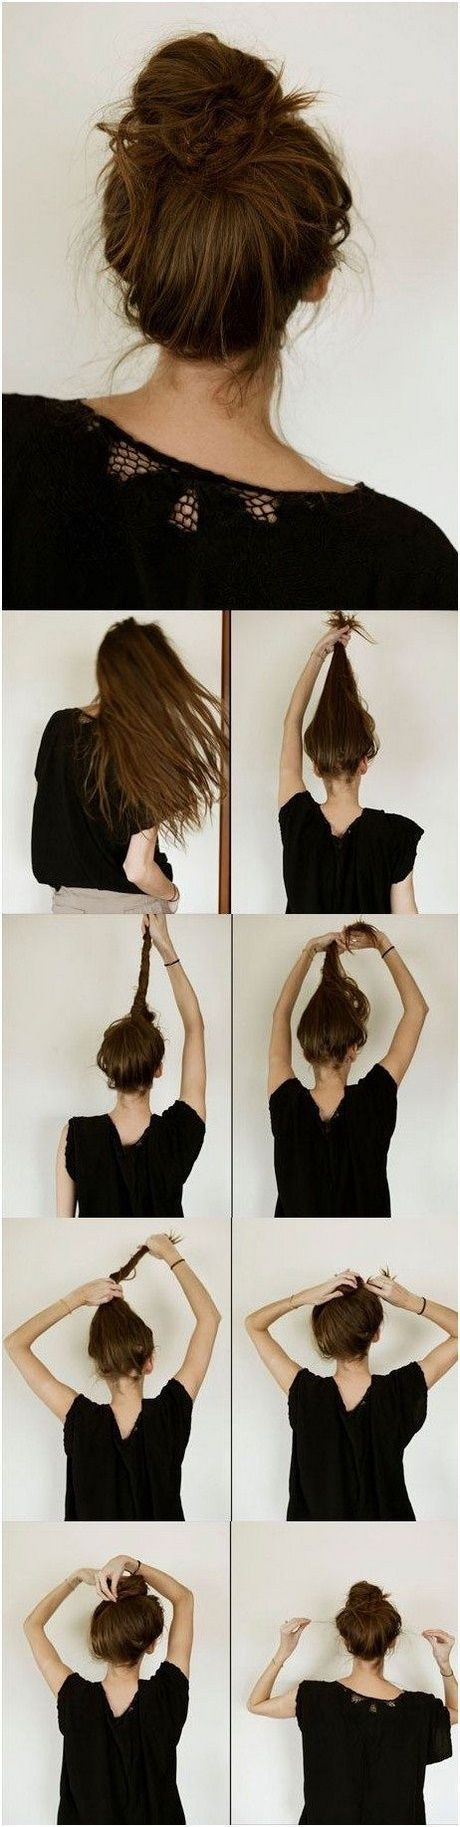 10 Hairstyles For Everyday Hair Style Ideas Coiffure Coiffures Simples Coiffure Facile